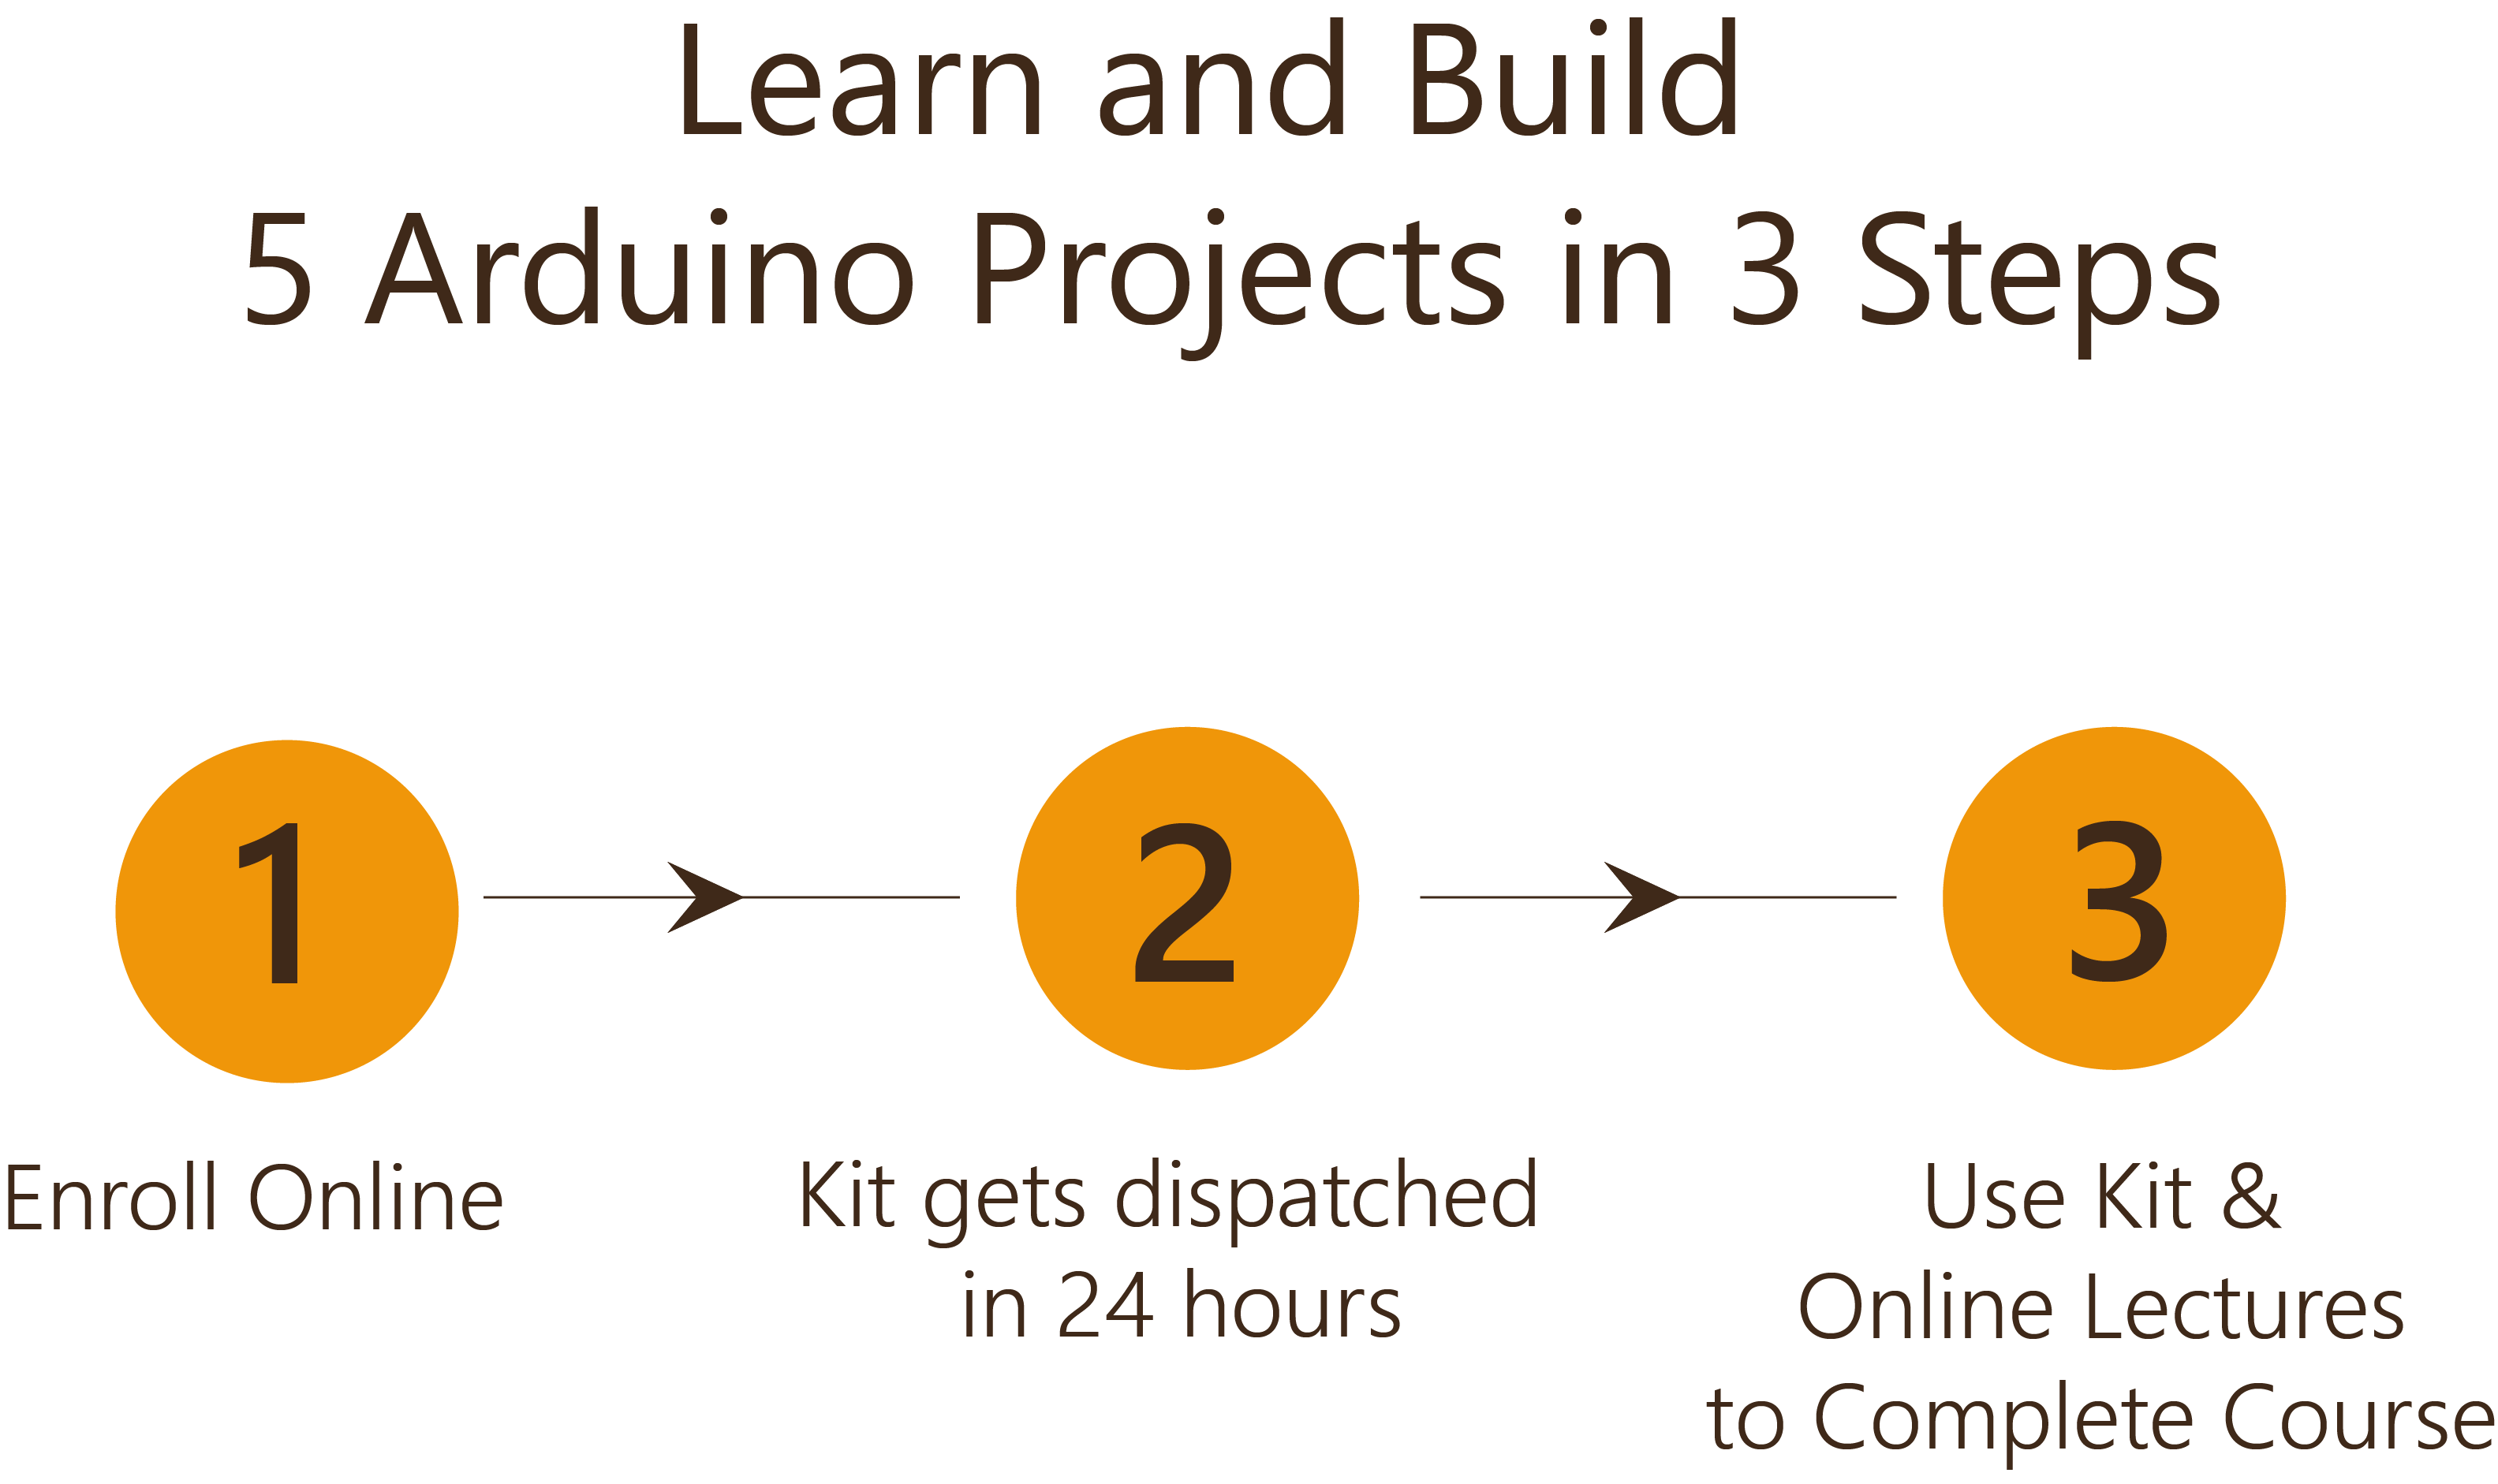 Learn and Build 5 Arduino Projects in 3 Steps